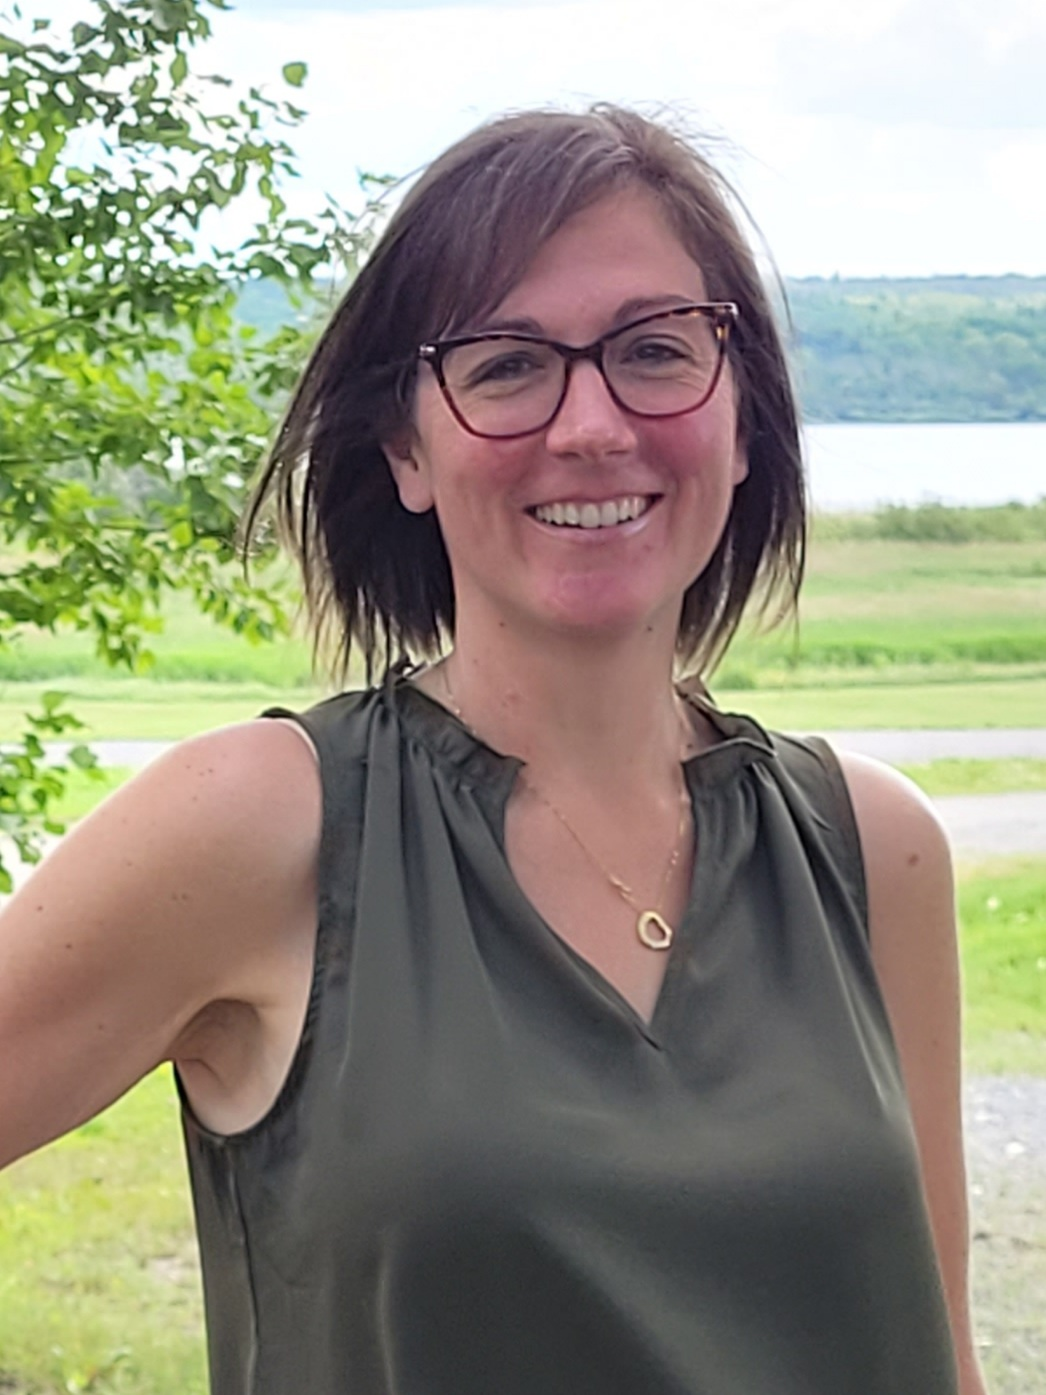 Woman with short brown hair and glasses